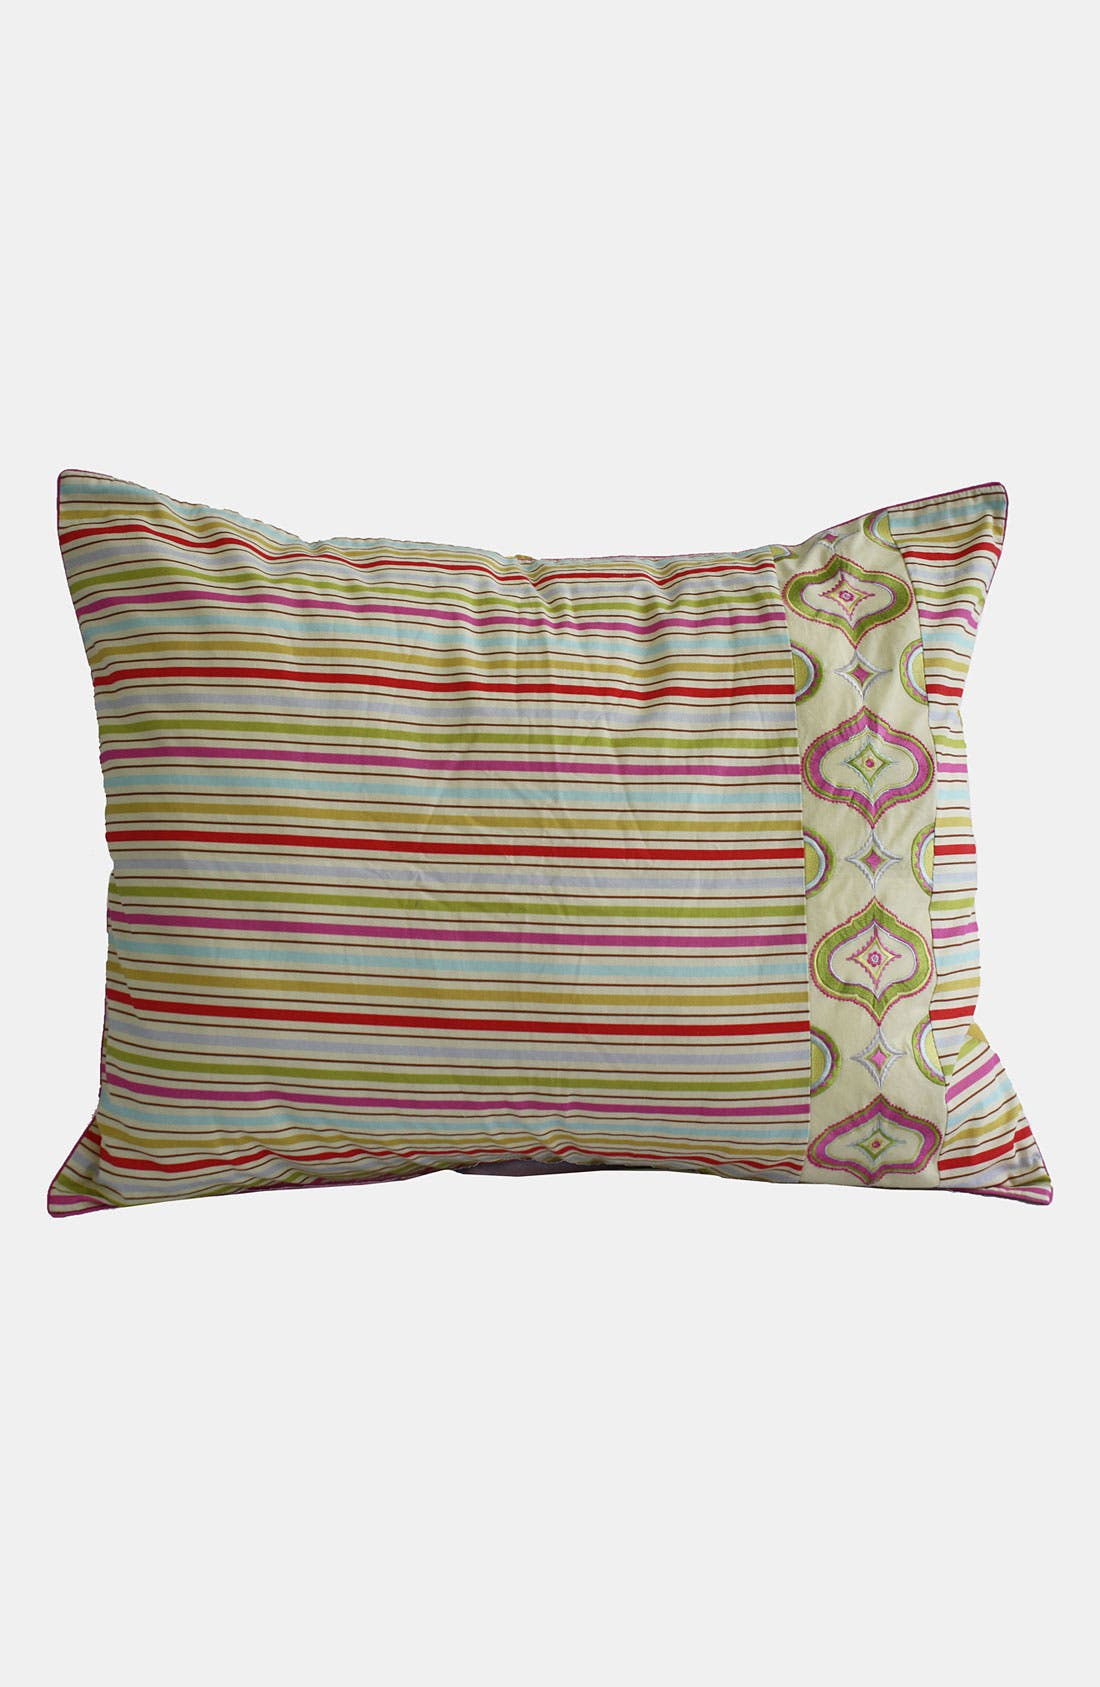 Alternate Image 1 Selected - Dena Home 'Zarina' Pillow Sham